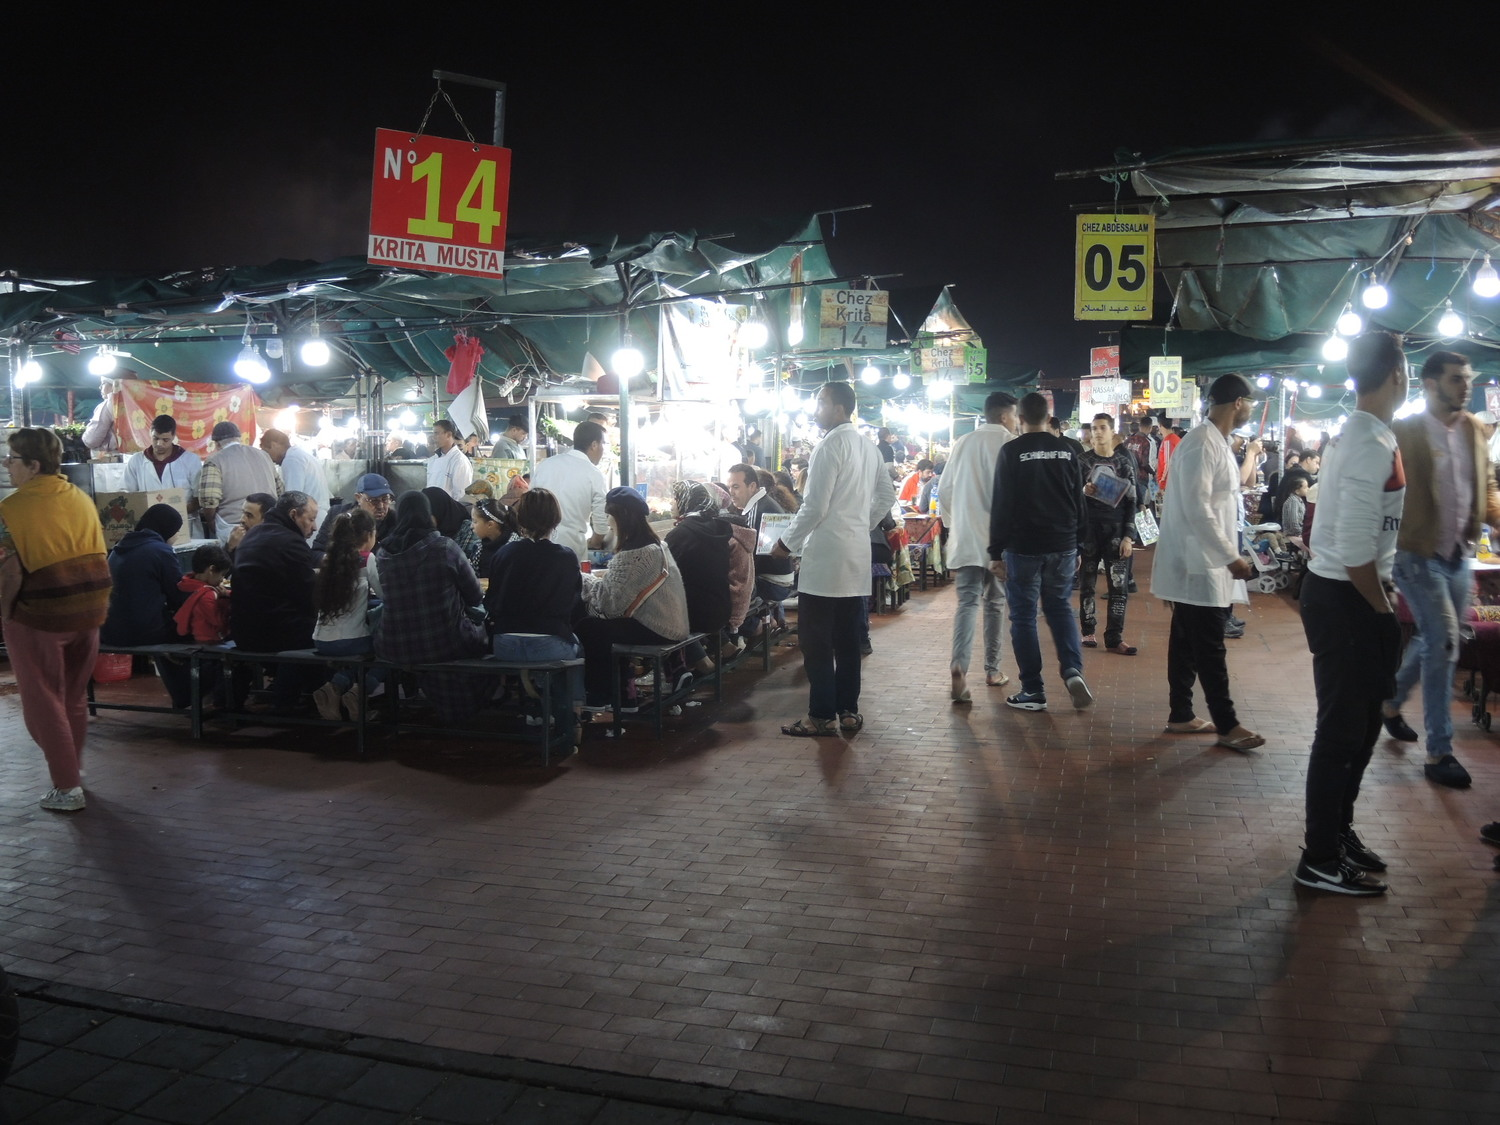 Jamaa El Fna market at night